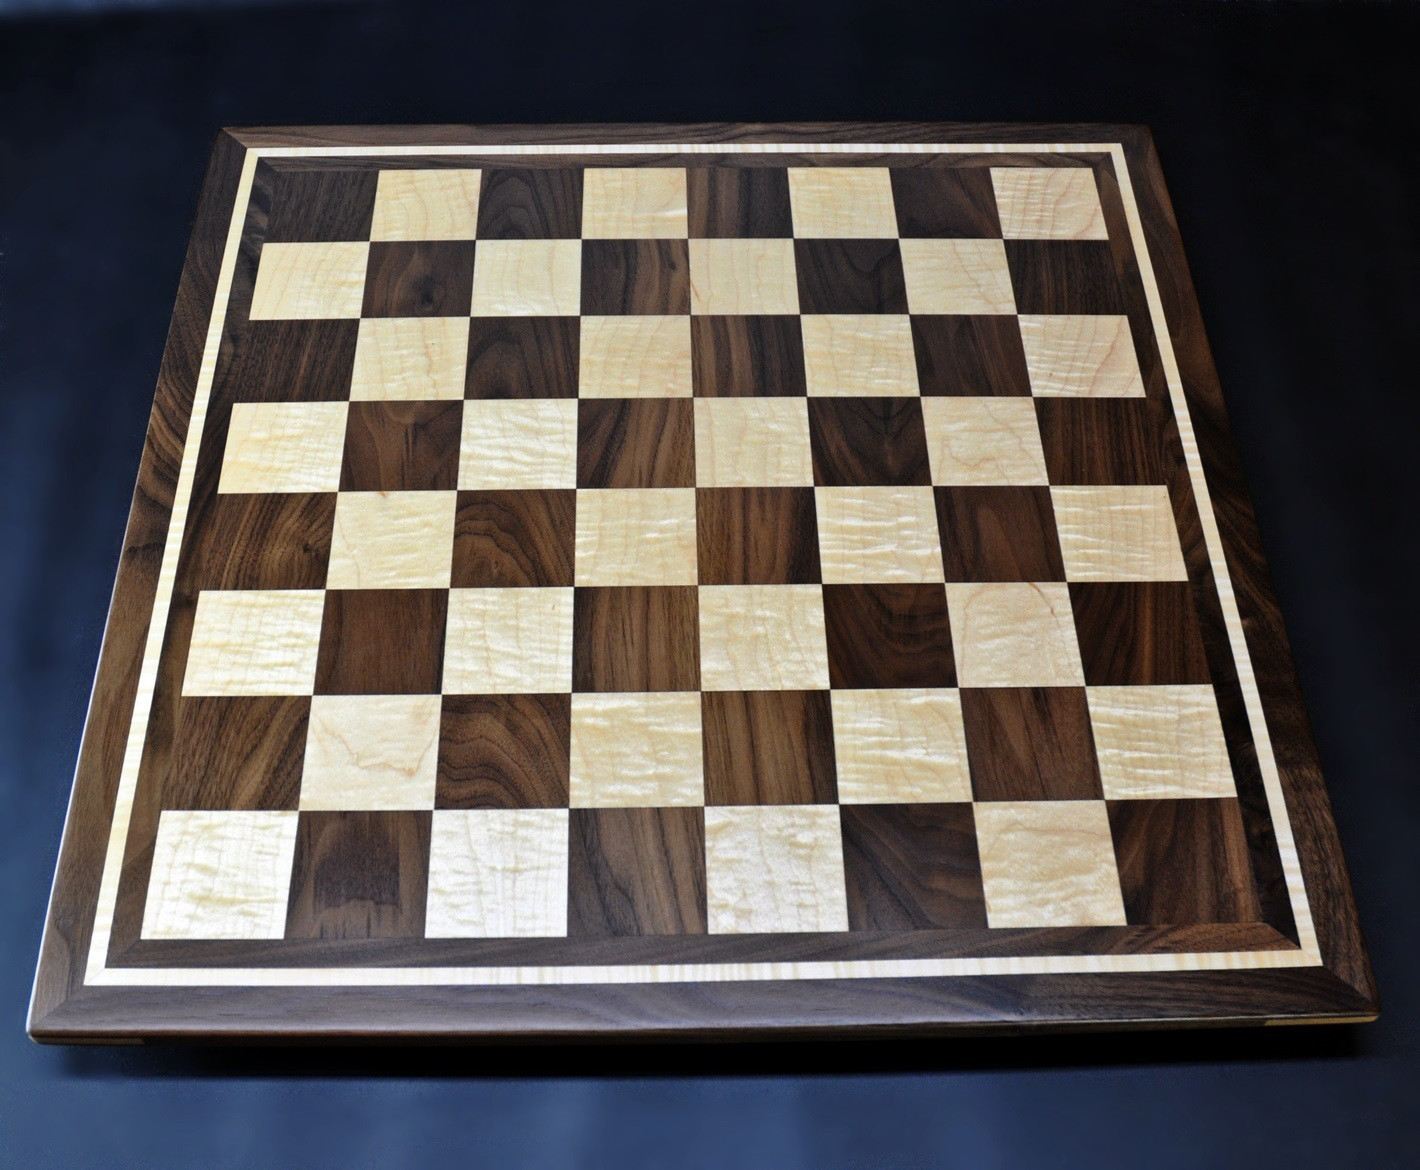 Curly maple and Walnut Chess board by Sweet Hill Wood image 1